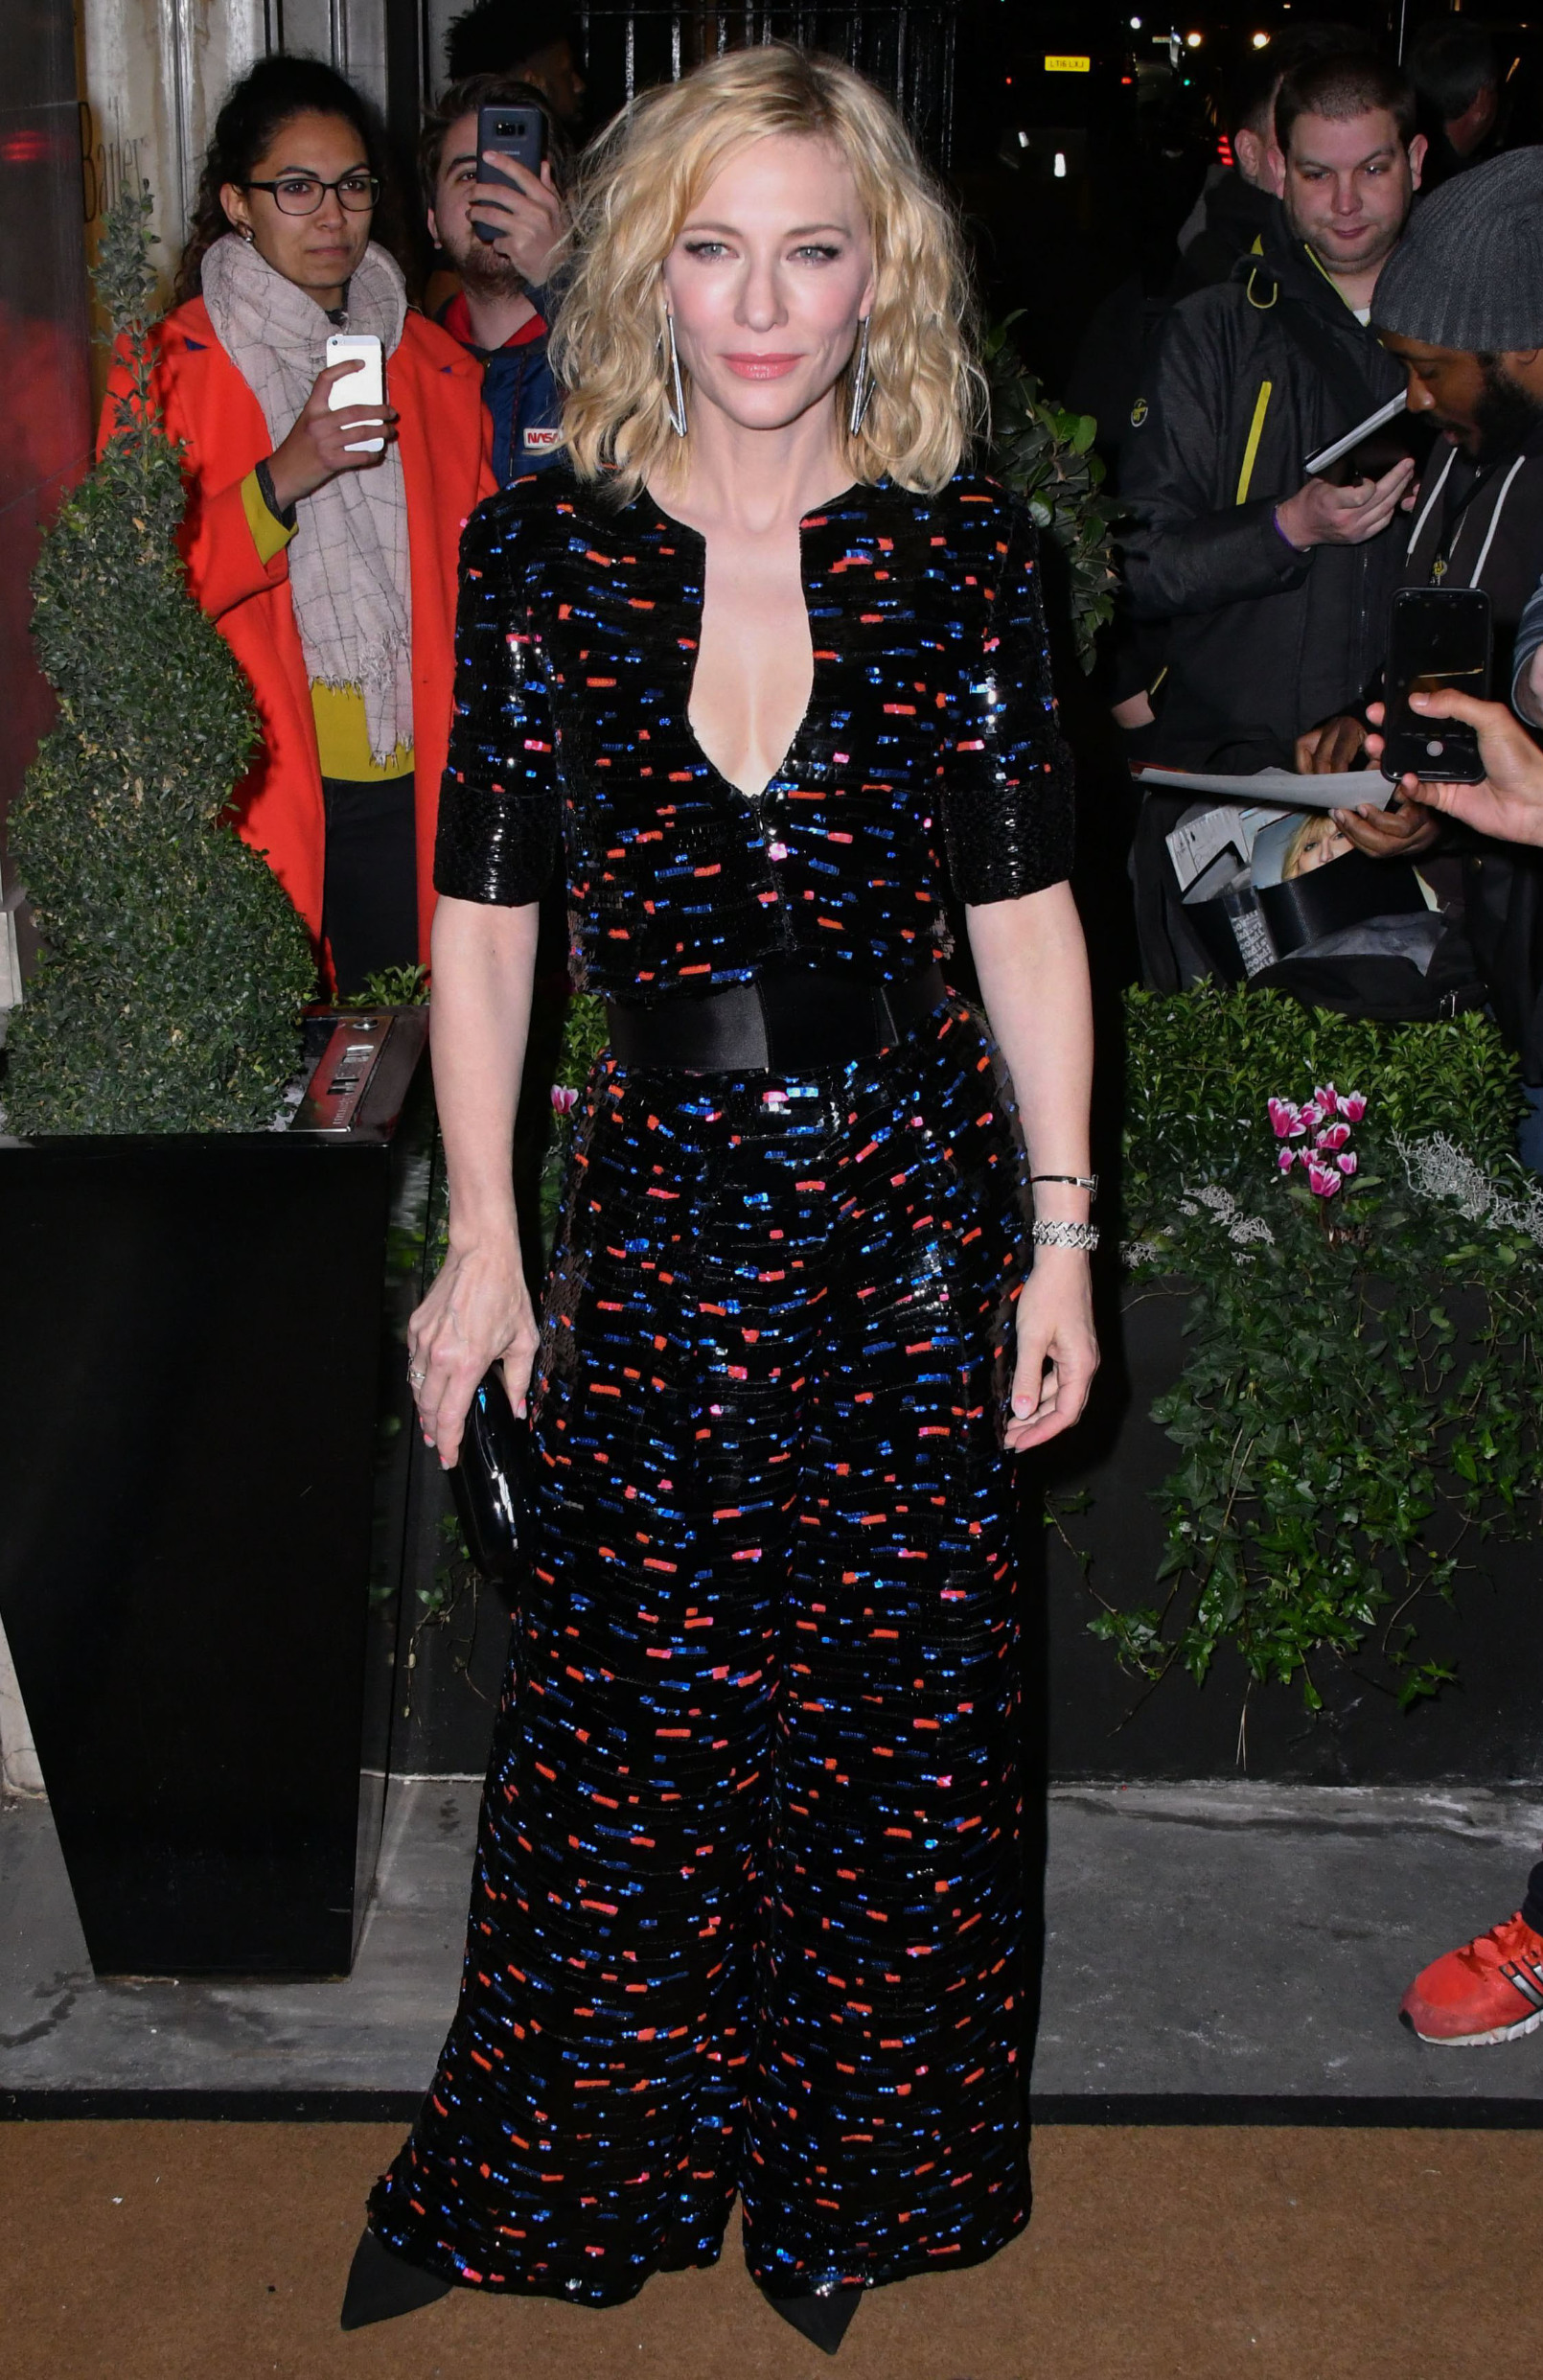 Cate Blanchett Harper's Bazaar Women of the Year Awards, Claridge's, London, UK - 29 Oct 2019 Cate Blanchett attends Harper's Bazaar annual Women of the Year Awards, which celebrates female high-fliers, at Claridge's, Image: 479718116, License: Rights-managed, Restrictions: , Model Release: no, Credit line: Nils Jorgensen / Shutterstock Editorial / Profimedia